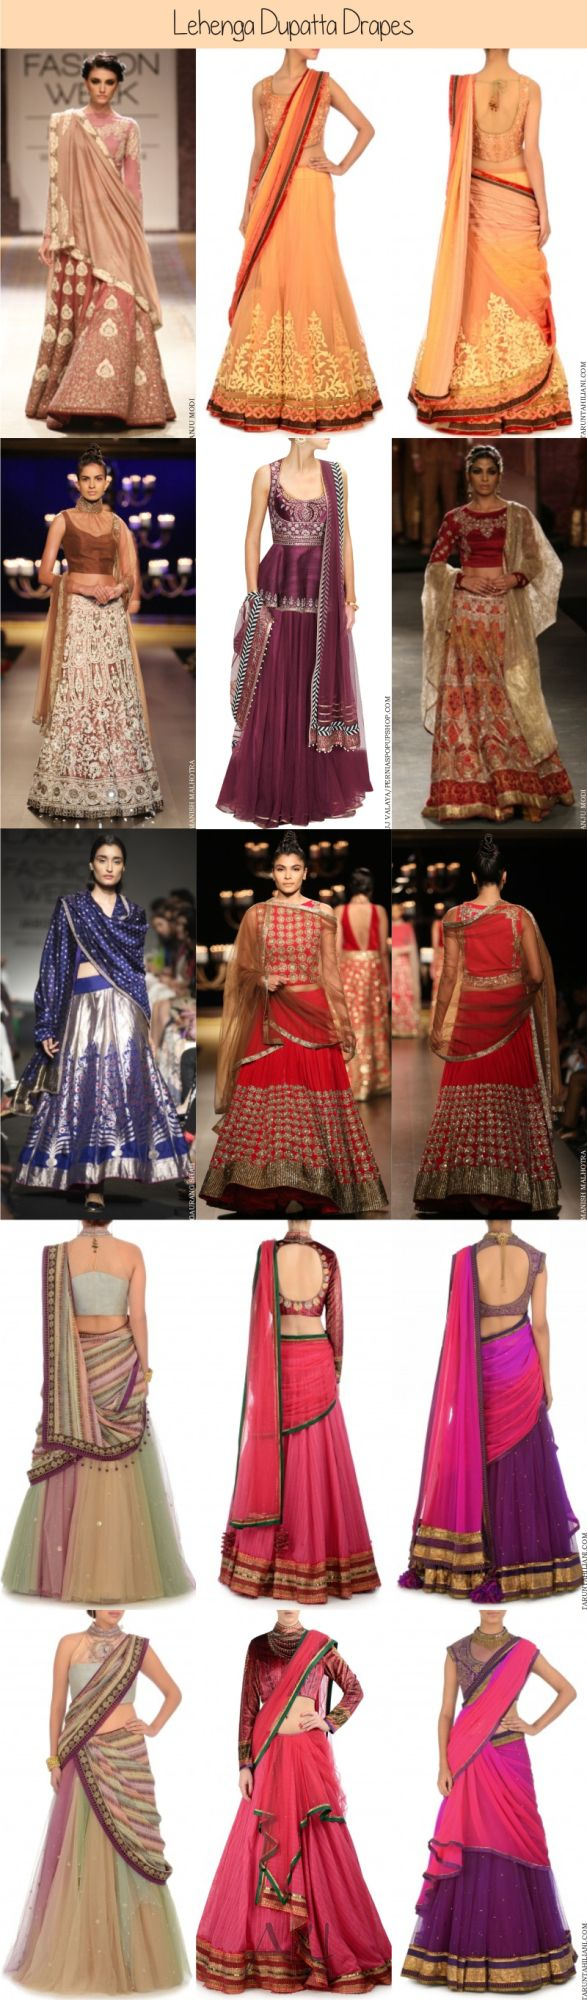 Lehenga Dupatta Drape Styles | Lehenga Design | Indian Wedding Wear | Indian Bride | Bridal Lehenga Dupatta and Veil | Indian Wedding Guest | What to wear to an Indian wedding | Ghagra Blouse Dupatta Drapes | India Traditional and Designer Wear